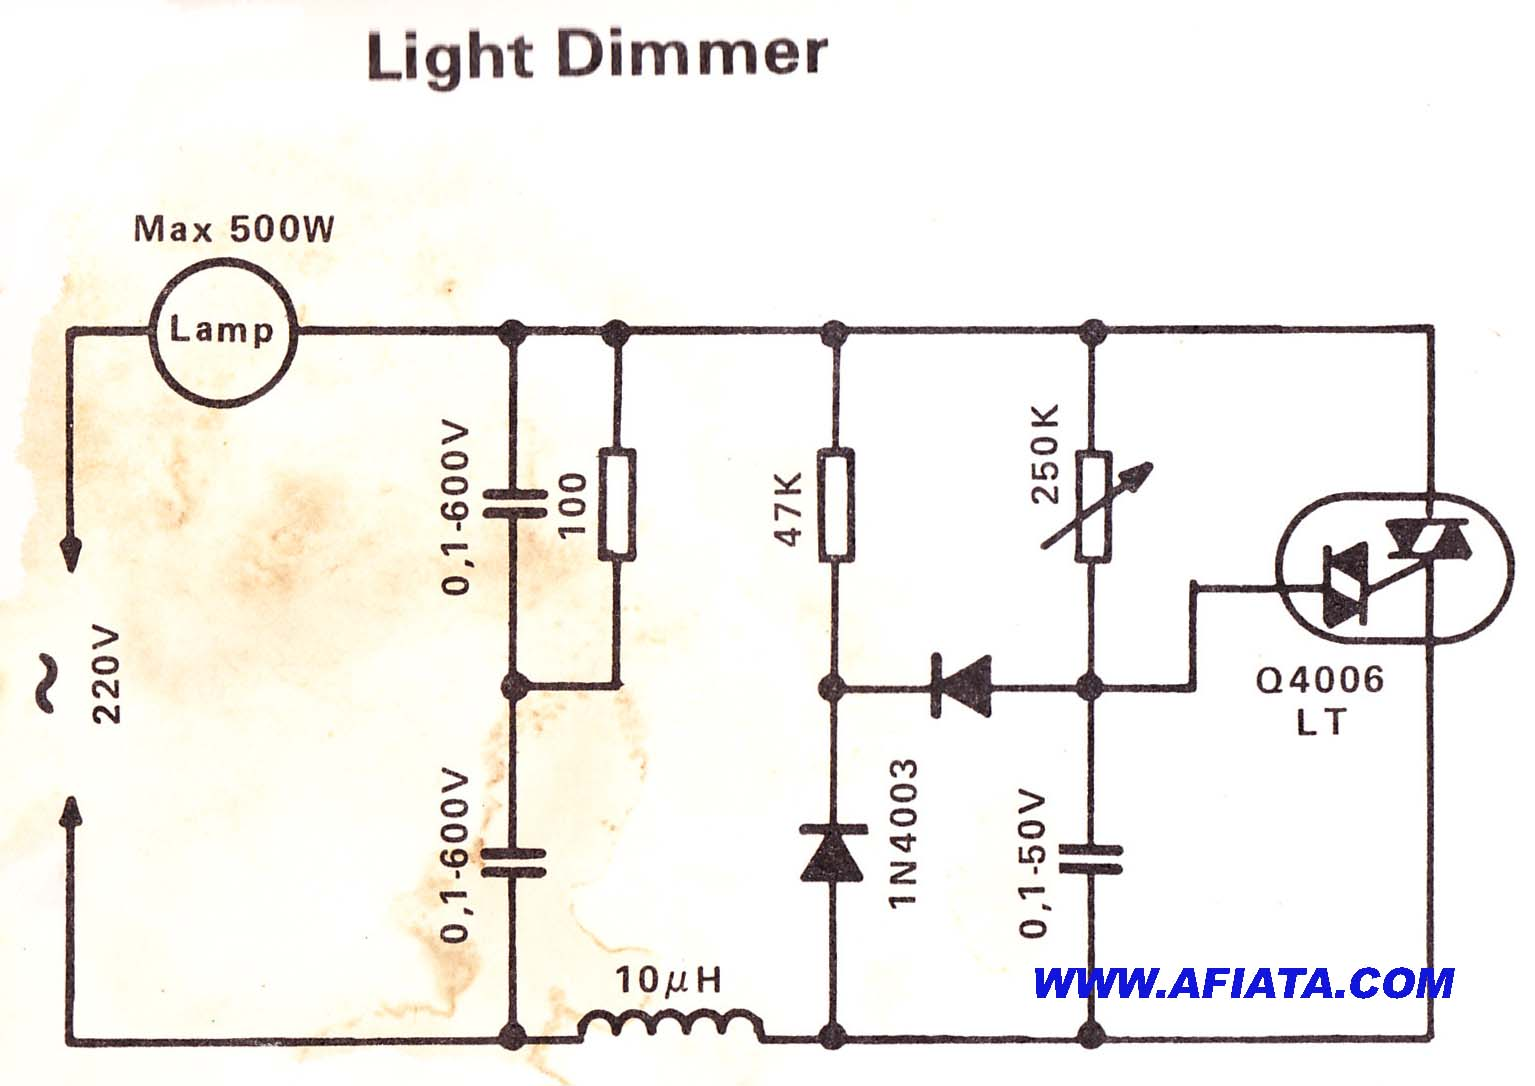 hight resolution of simple light dimmer diagram simple wiring diagramsimple light dimmer circuit electronic circuit diagram and layout light